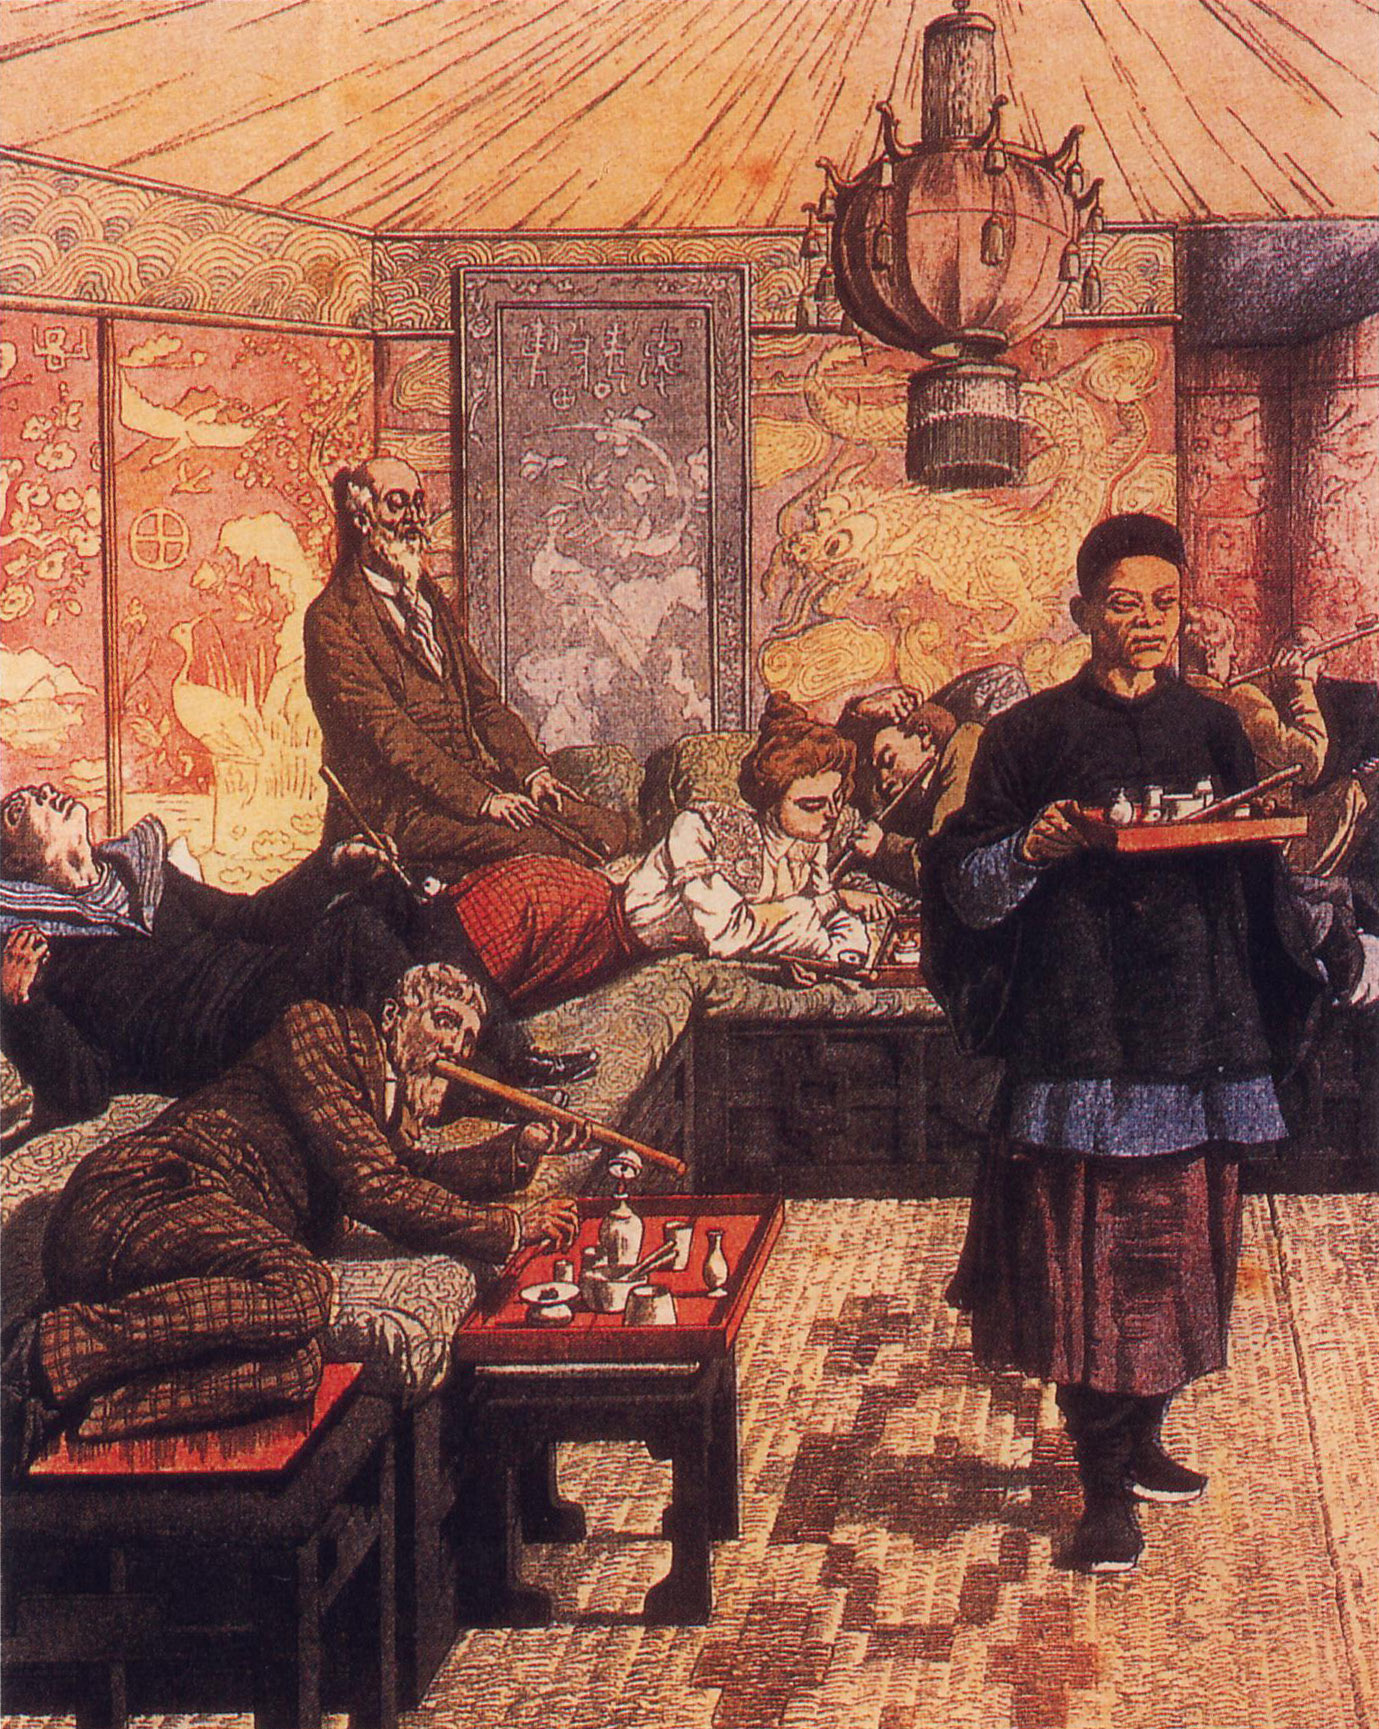 File:French opium den.jpg - Wikimedia Commons